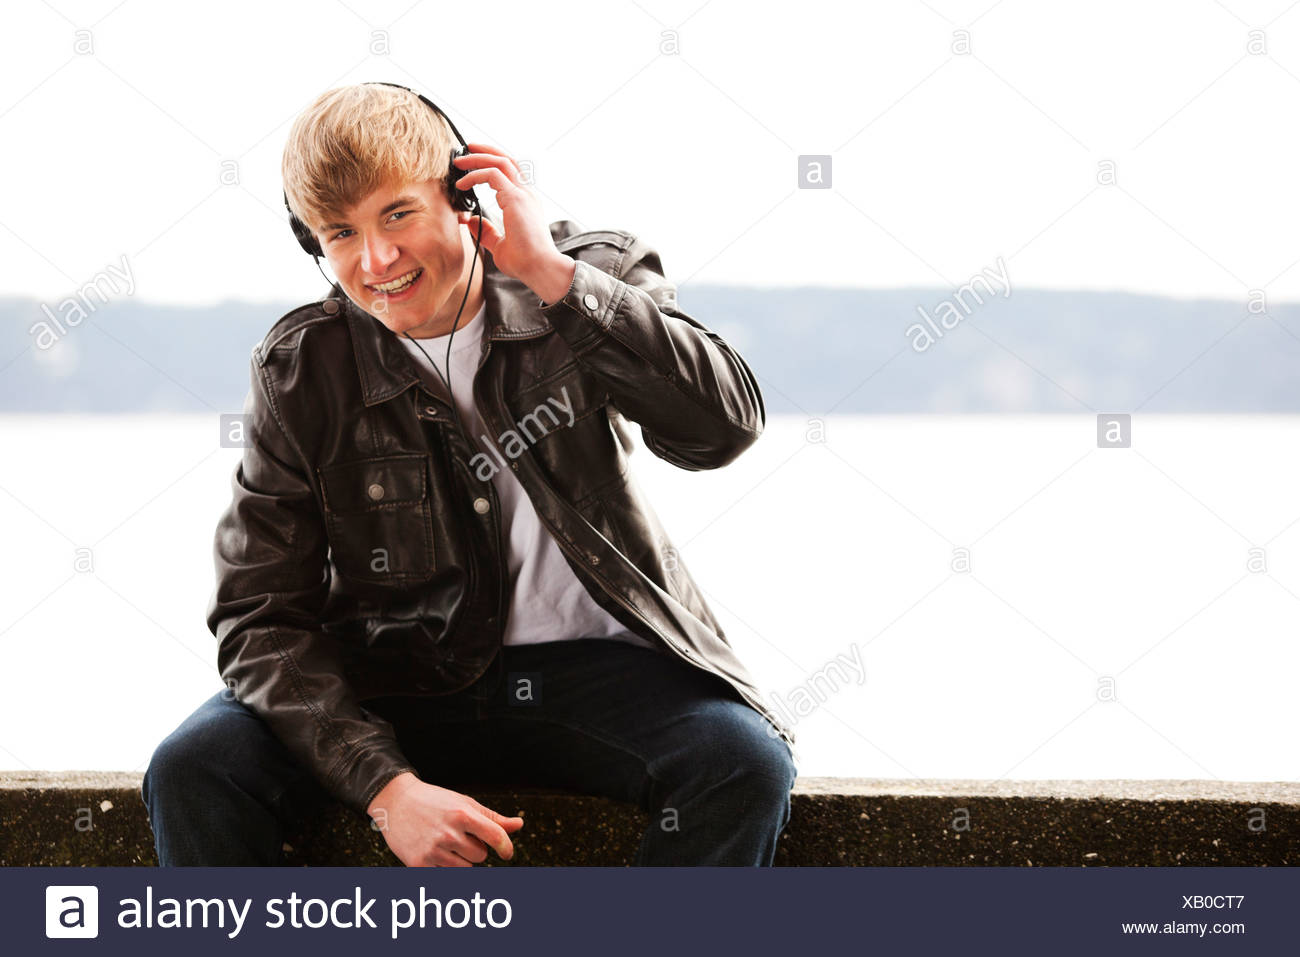 A man listens to headphones. - Stock Image